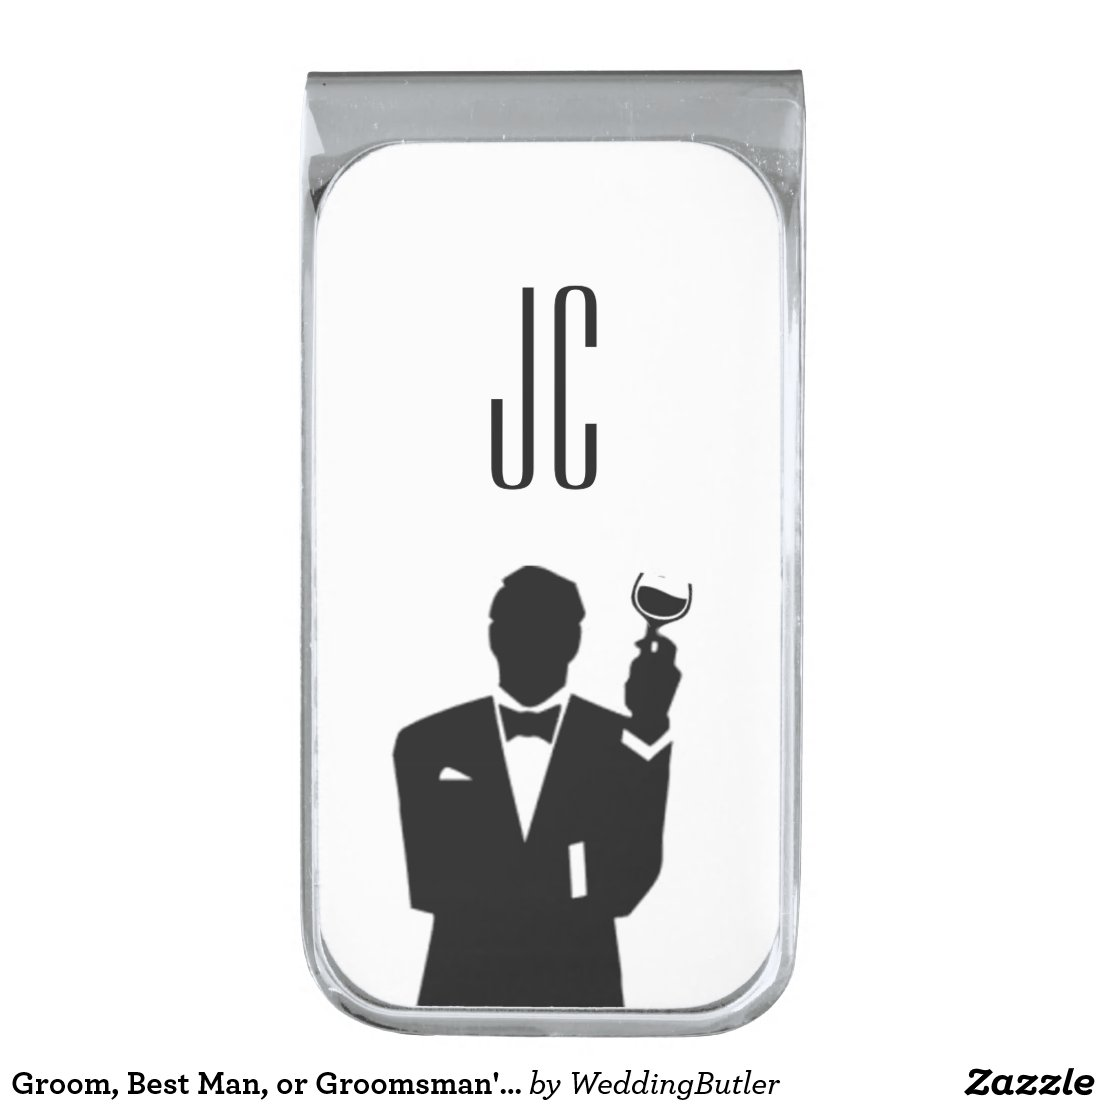 Groom, Best Man, or Groomsman's Money Clip